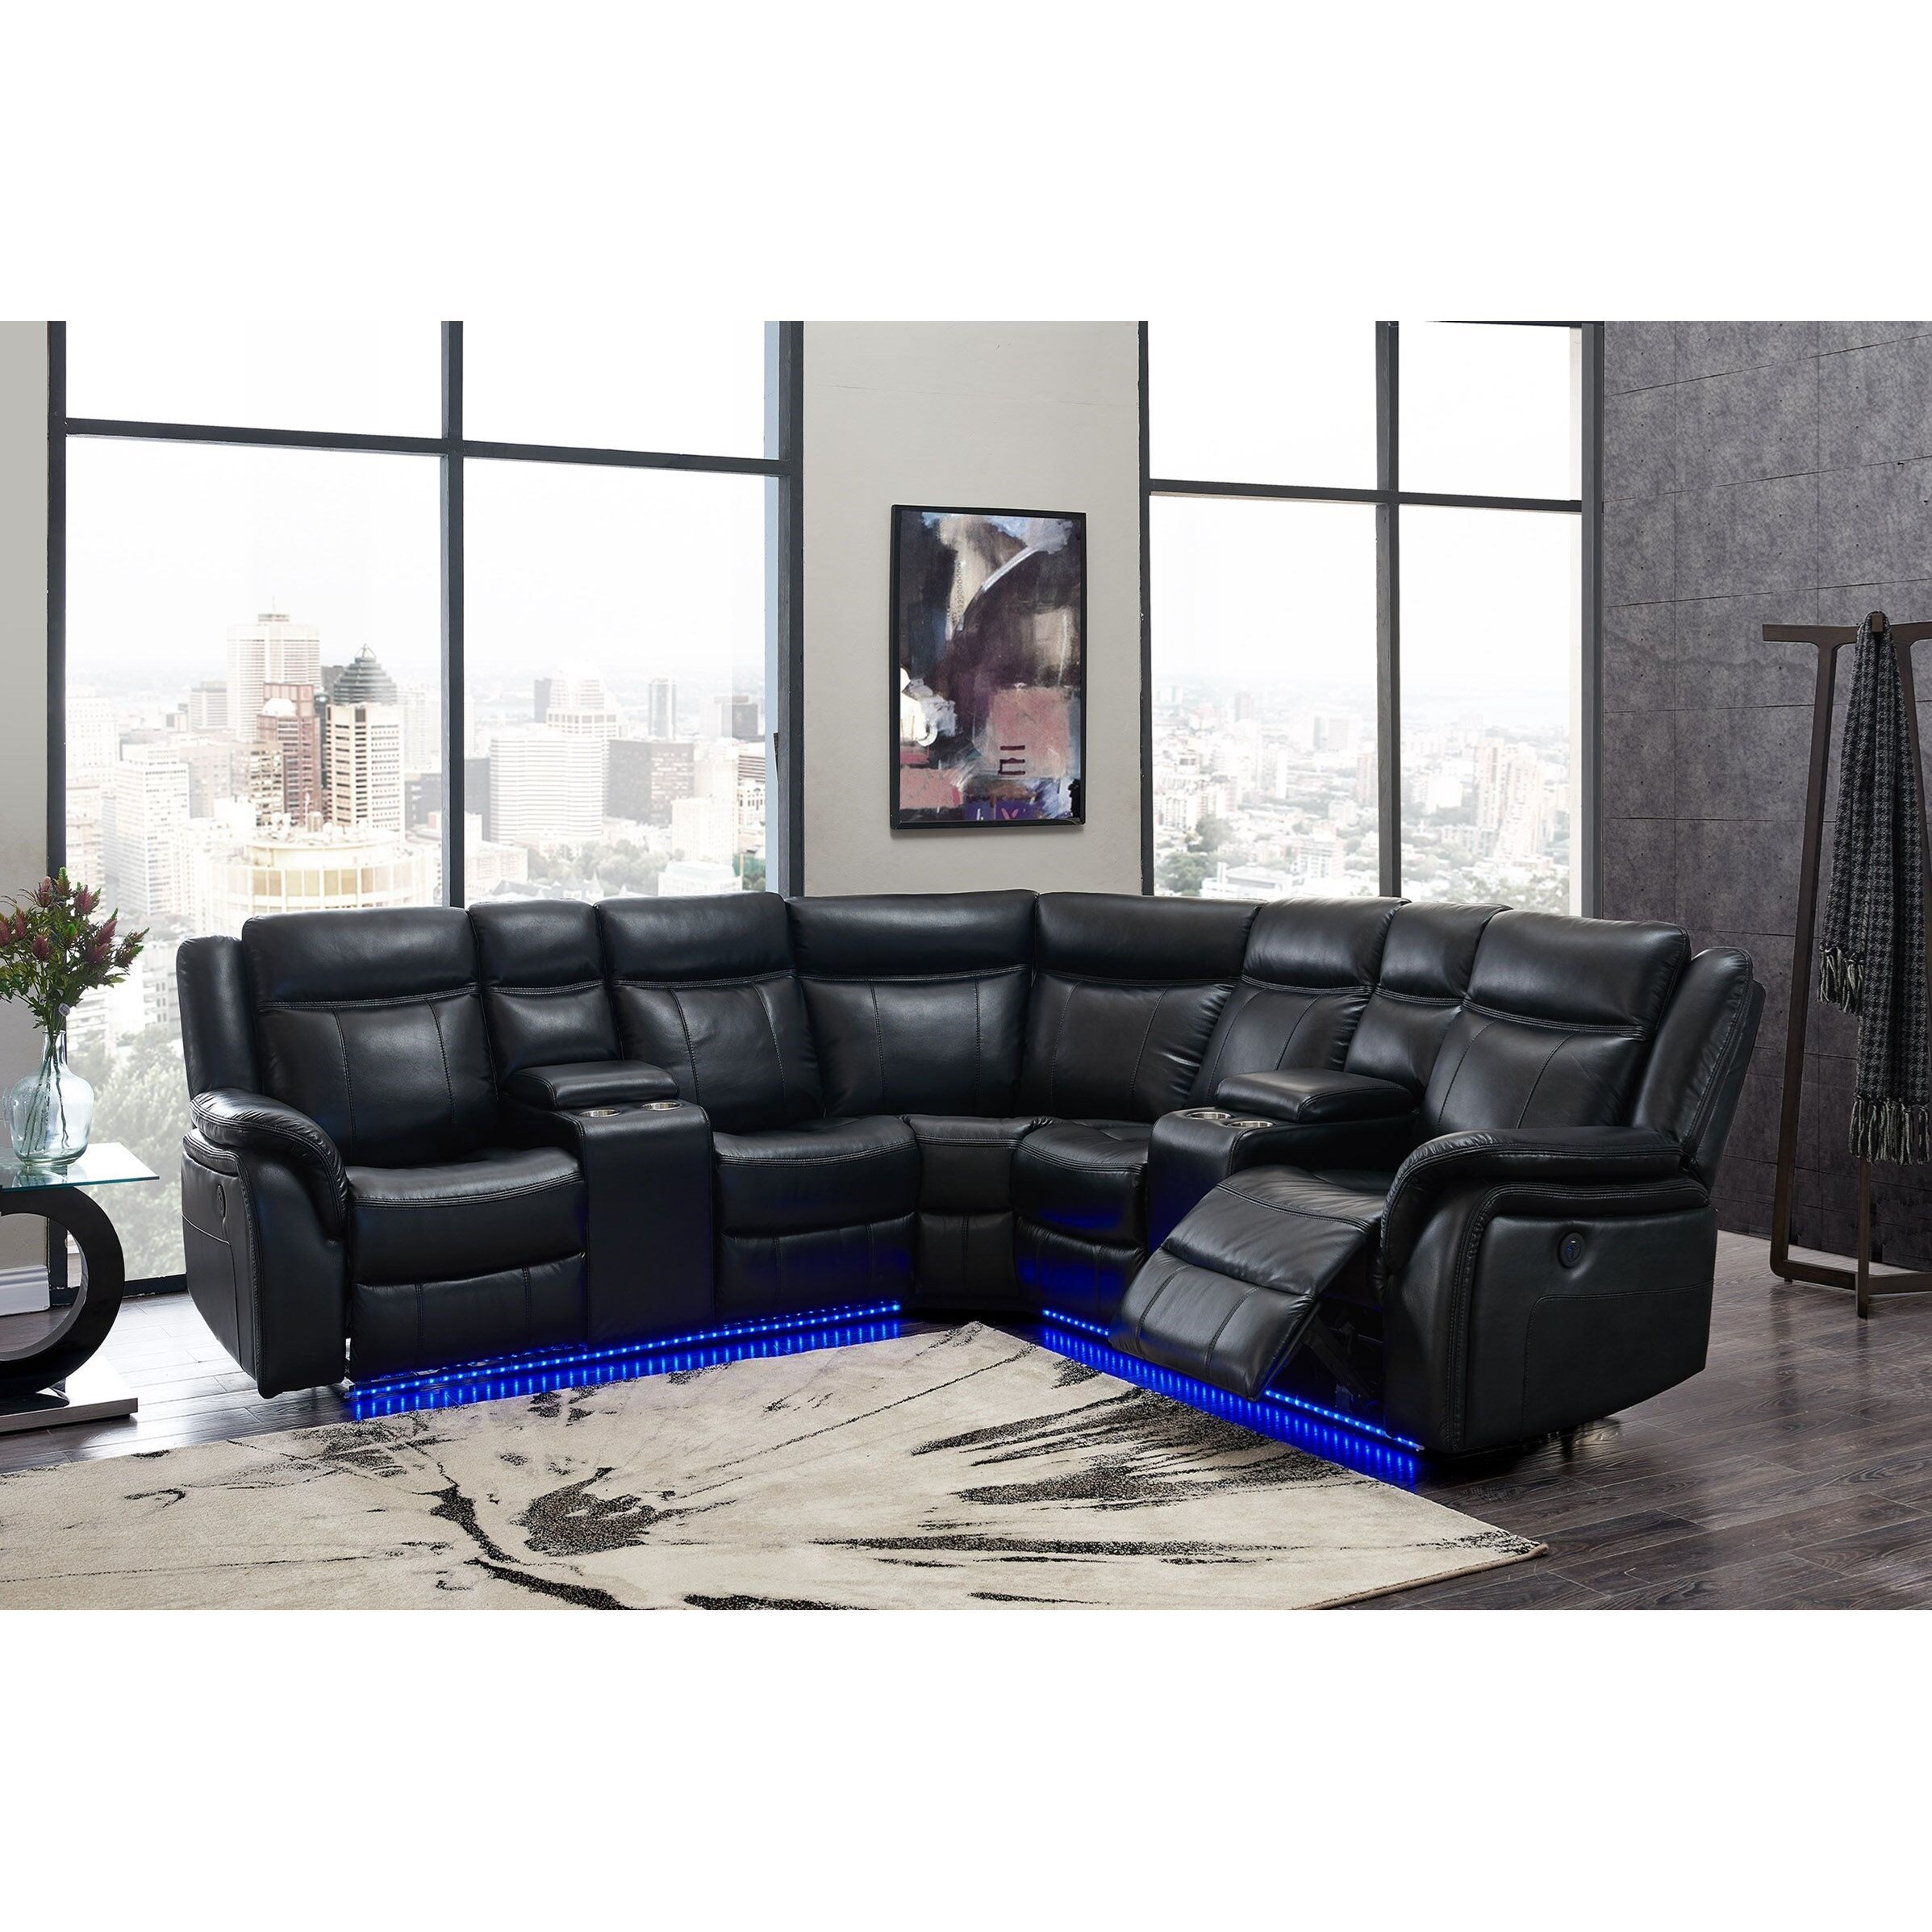 Picture of: Global Furniture Um02 Casual Power Reclining Sectional Sofa With Storage Console Cup Holders And Led Lighting Value City Furniture Sectional Sofas